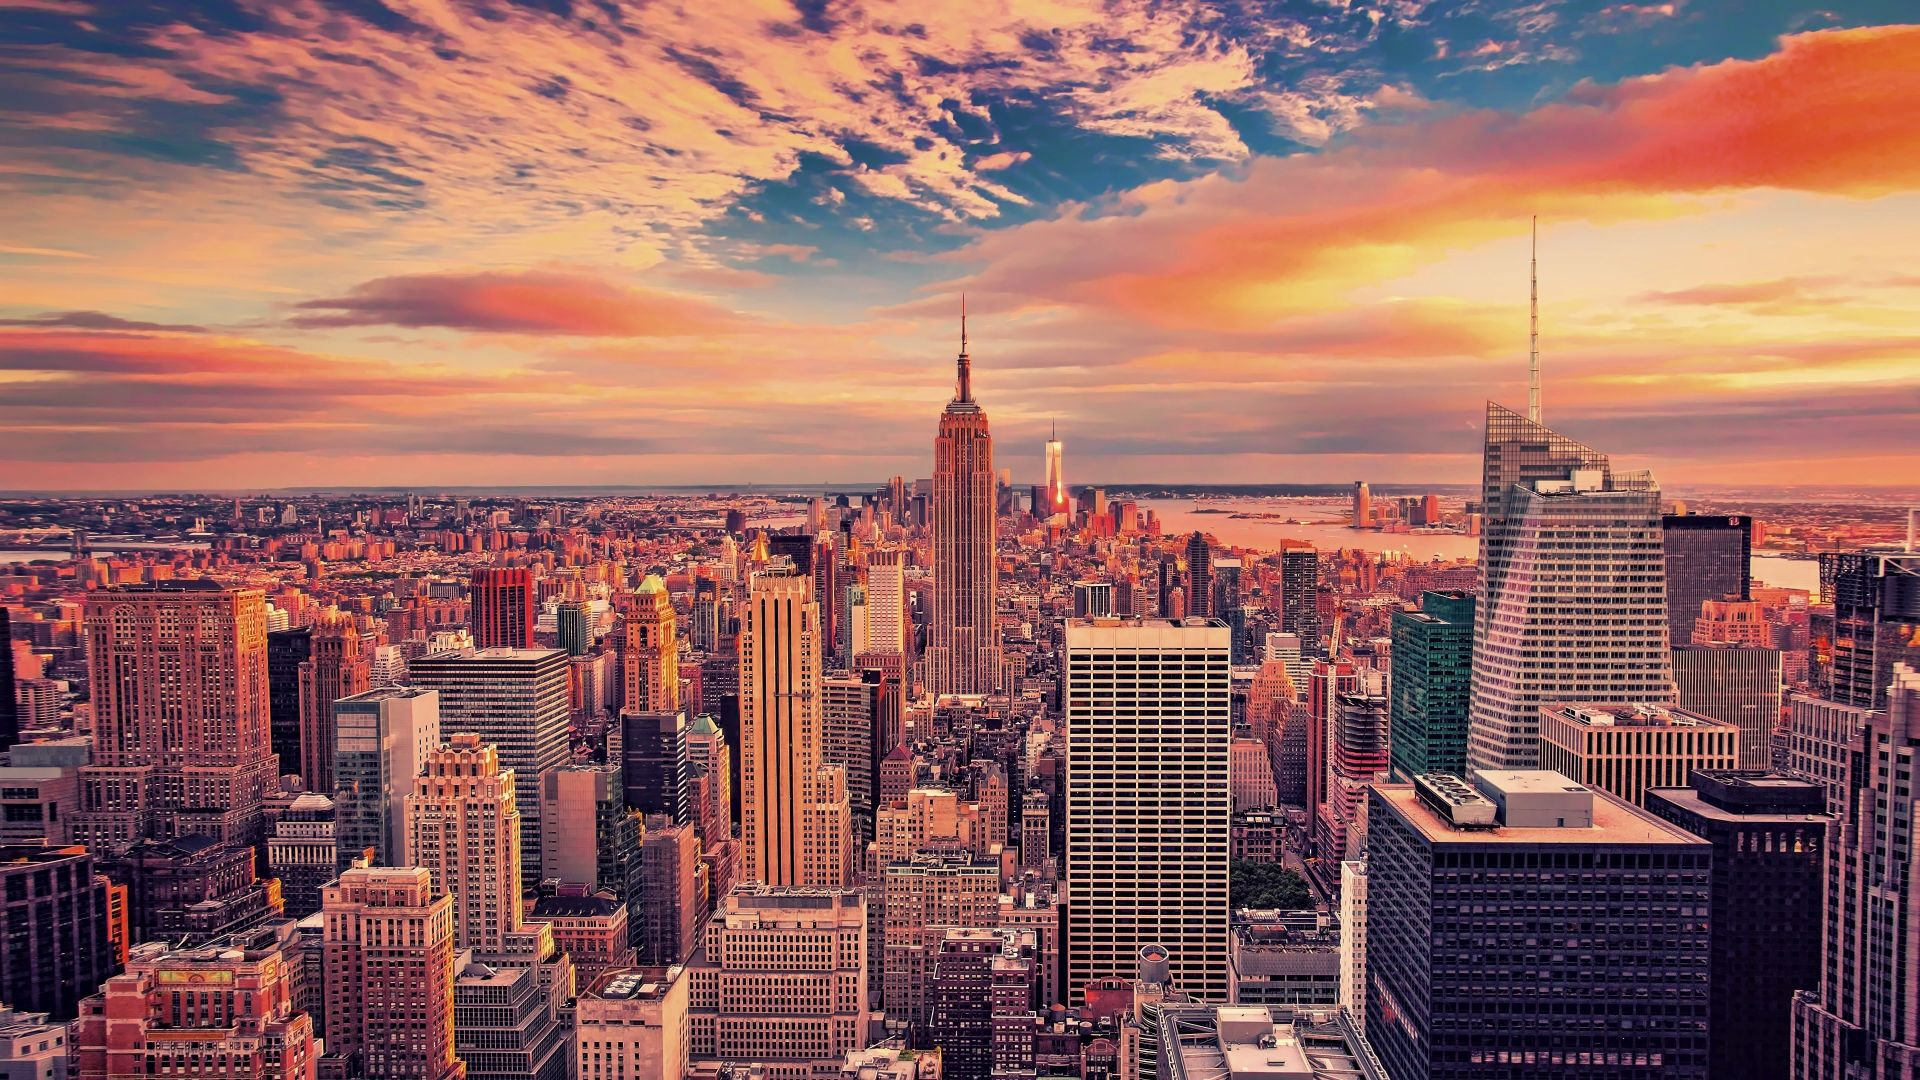 Wallpaper Empire state building, buildings, skyscrapers, new york city, sunset, 4k